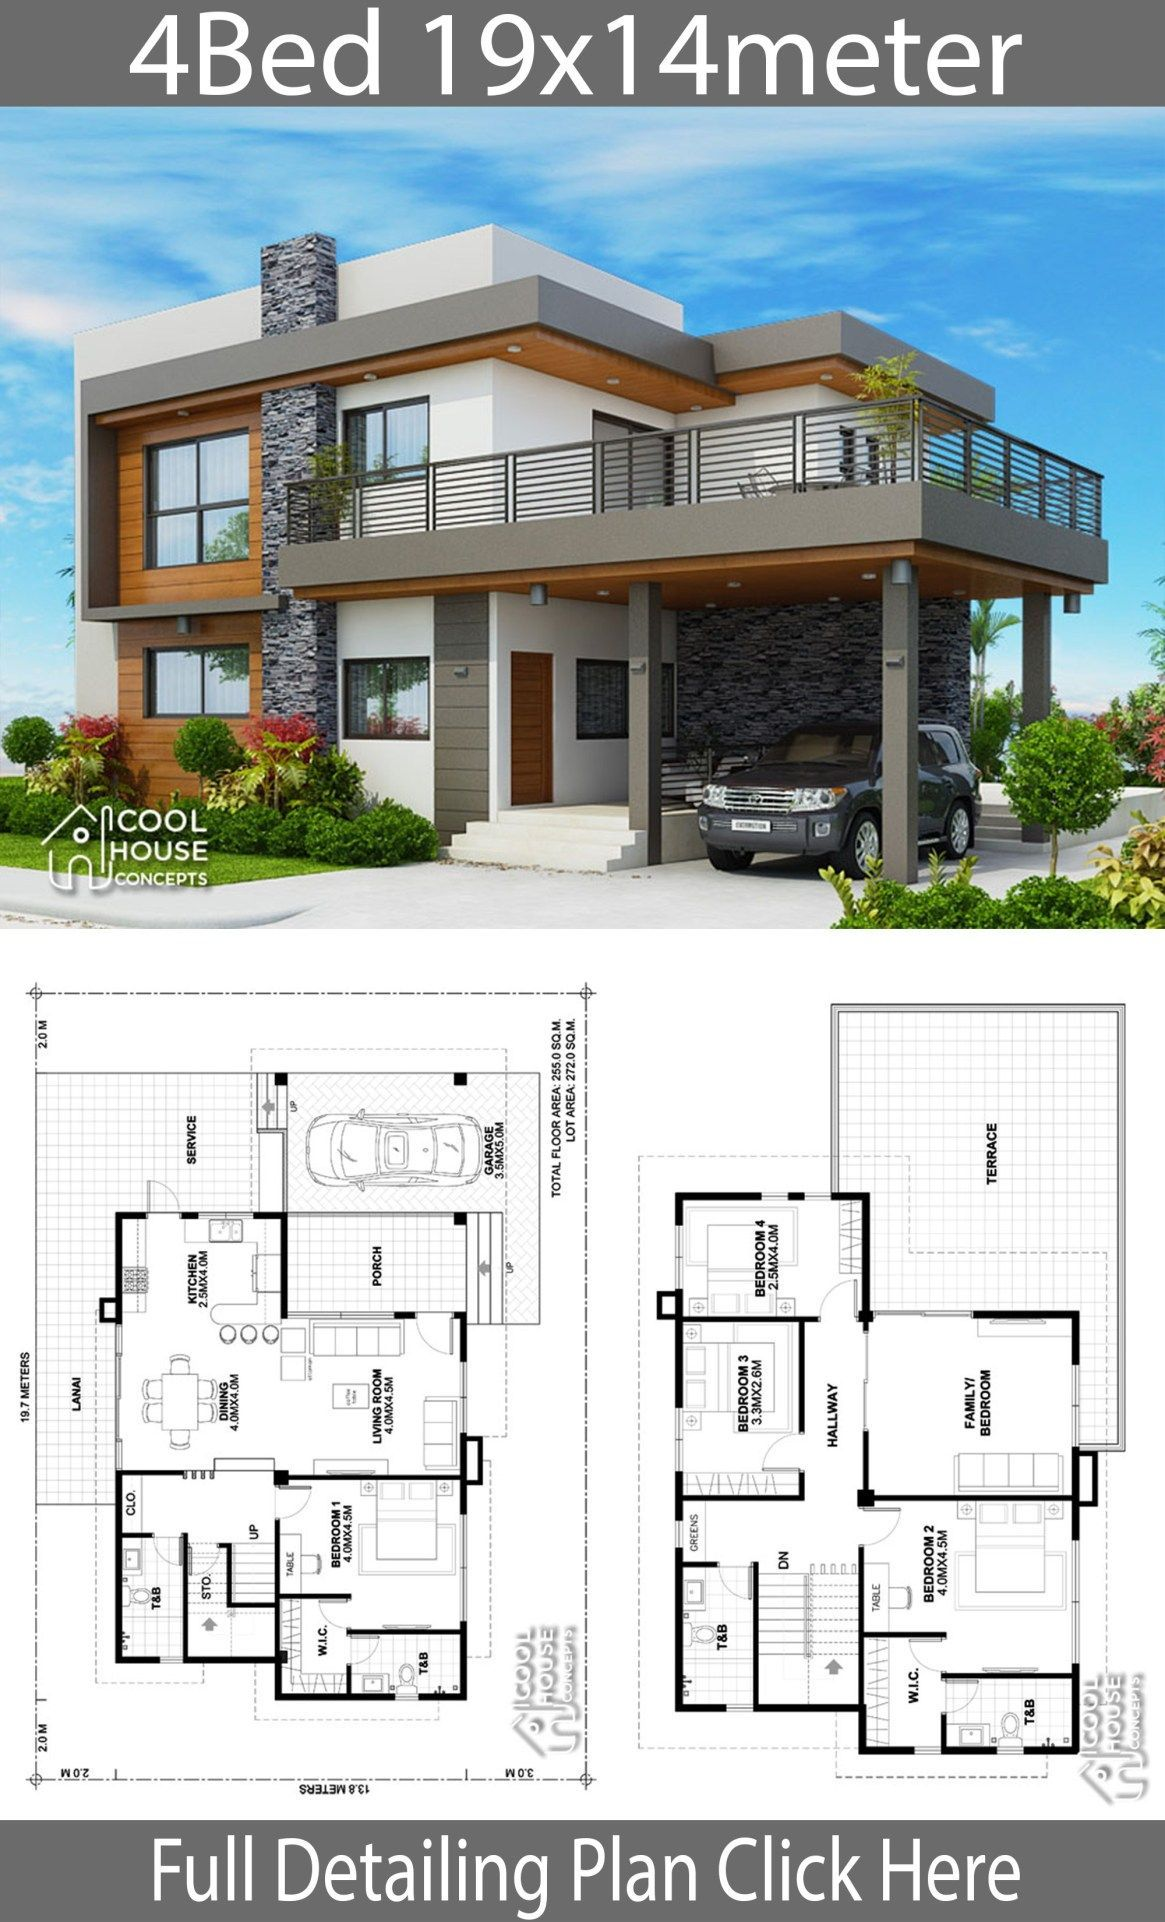 Home design plan 19x14m with 4 bedrooms - Home Design with Plansearch |  Duplex house design, House architecture design, Sims house plans